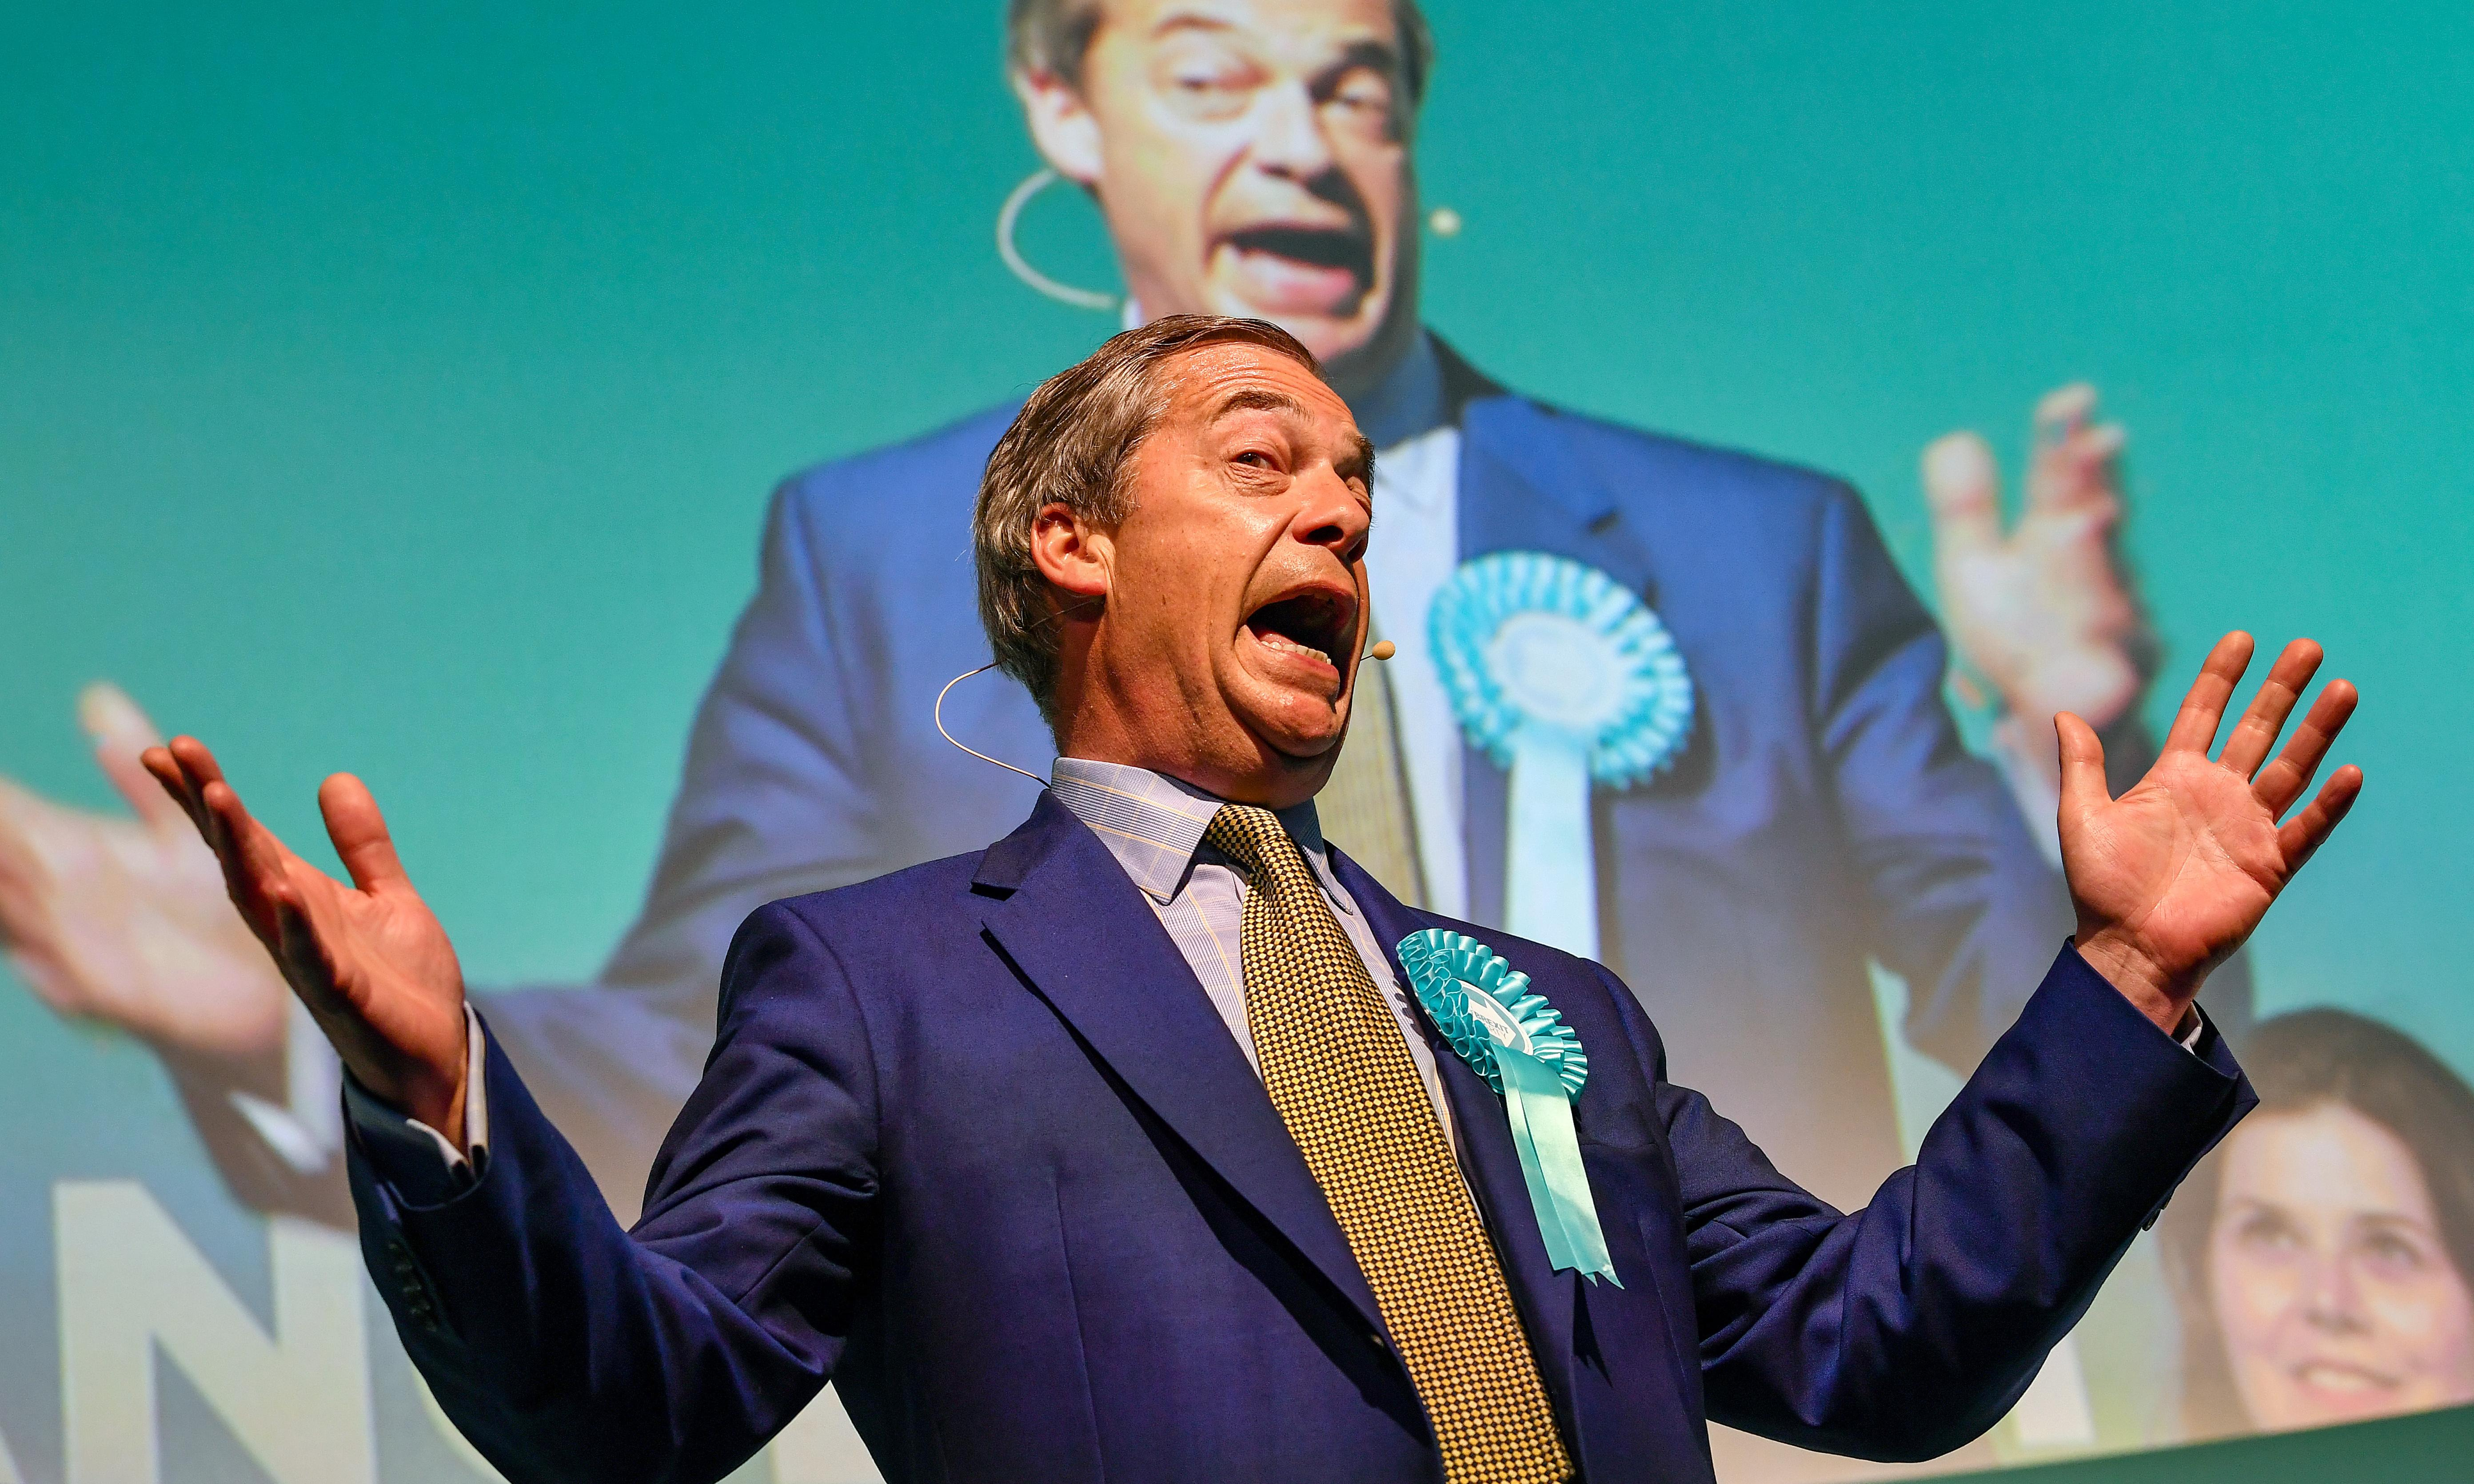 Monday briefing: 'Dirty money' could reach Farage party, Brown says